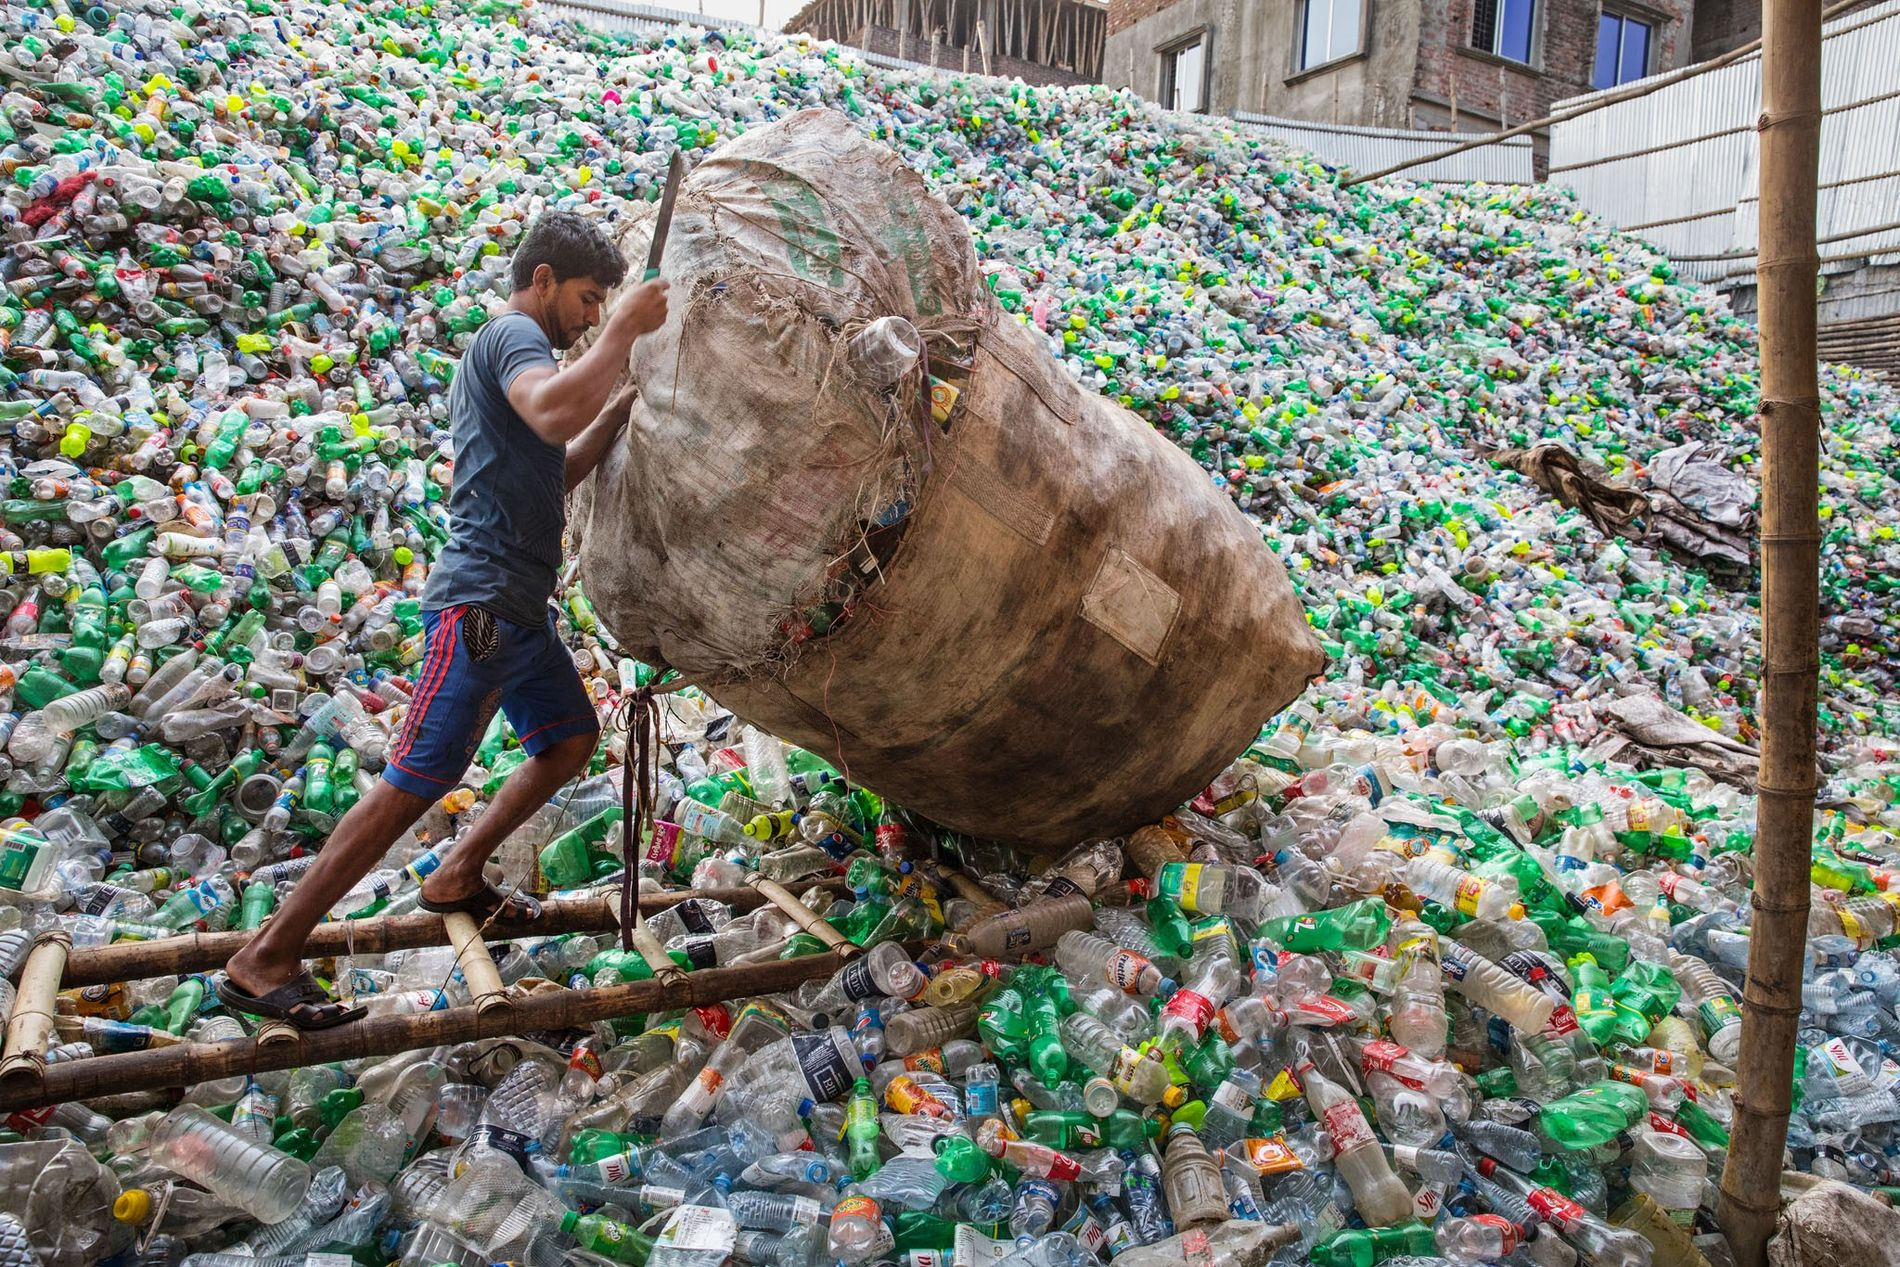 In Dhaka, Bangladesh, a man adds to a mountain of discarded plastic bottles. With the June 2018 issue, National Geographic invites other institutions to join us in reducing plastic use. Watch out for updates.